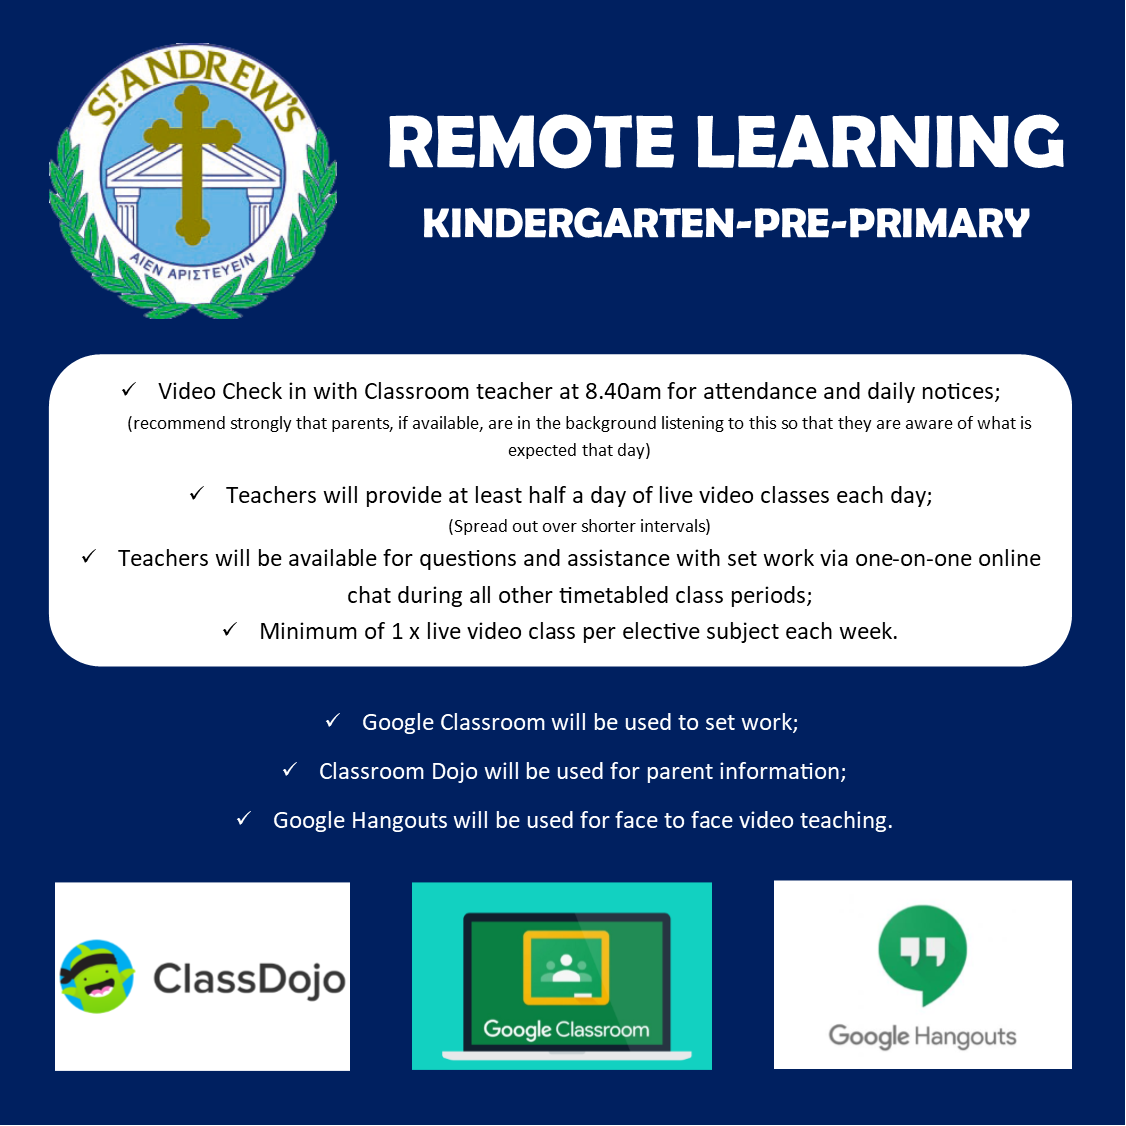 Remote Learning - KG & PP